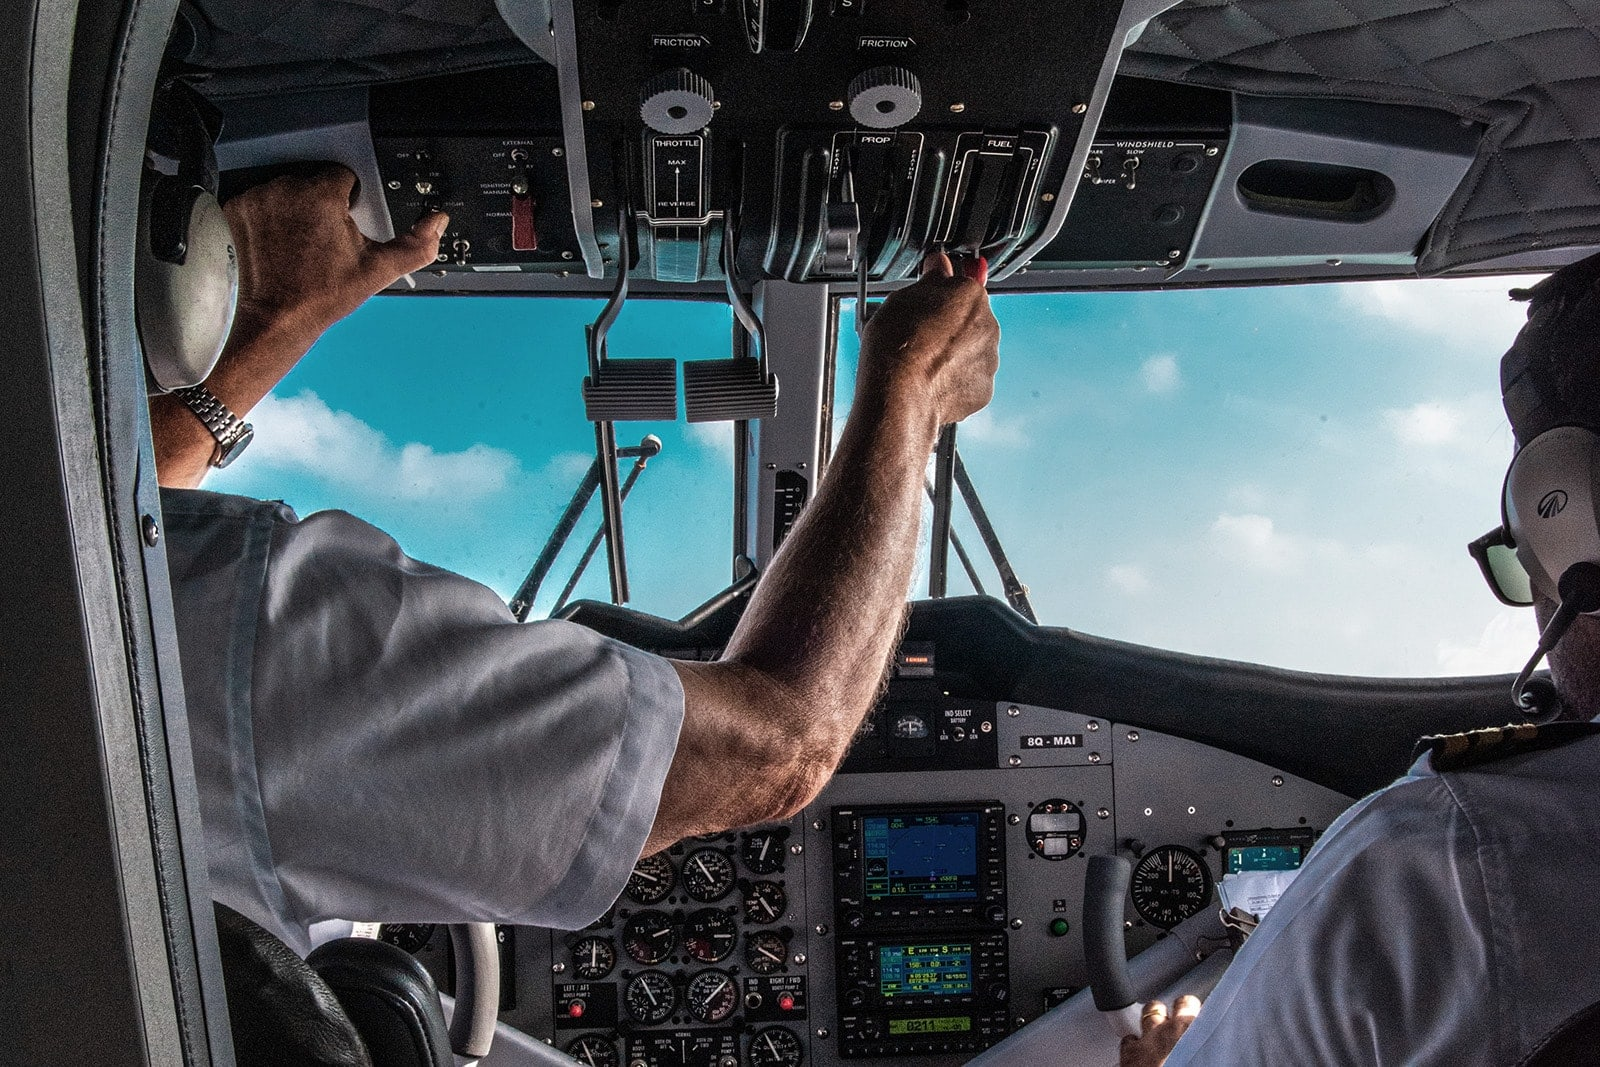 Pilots in Plane Cockpit